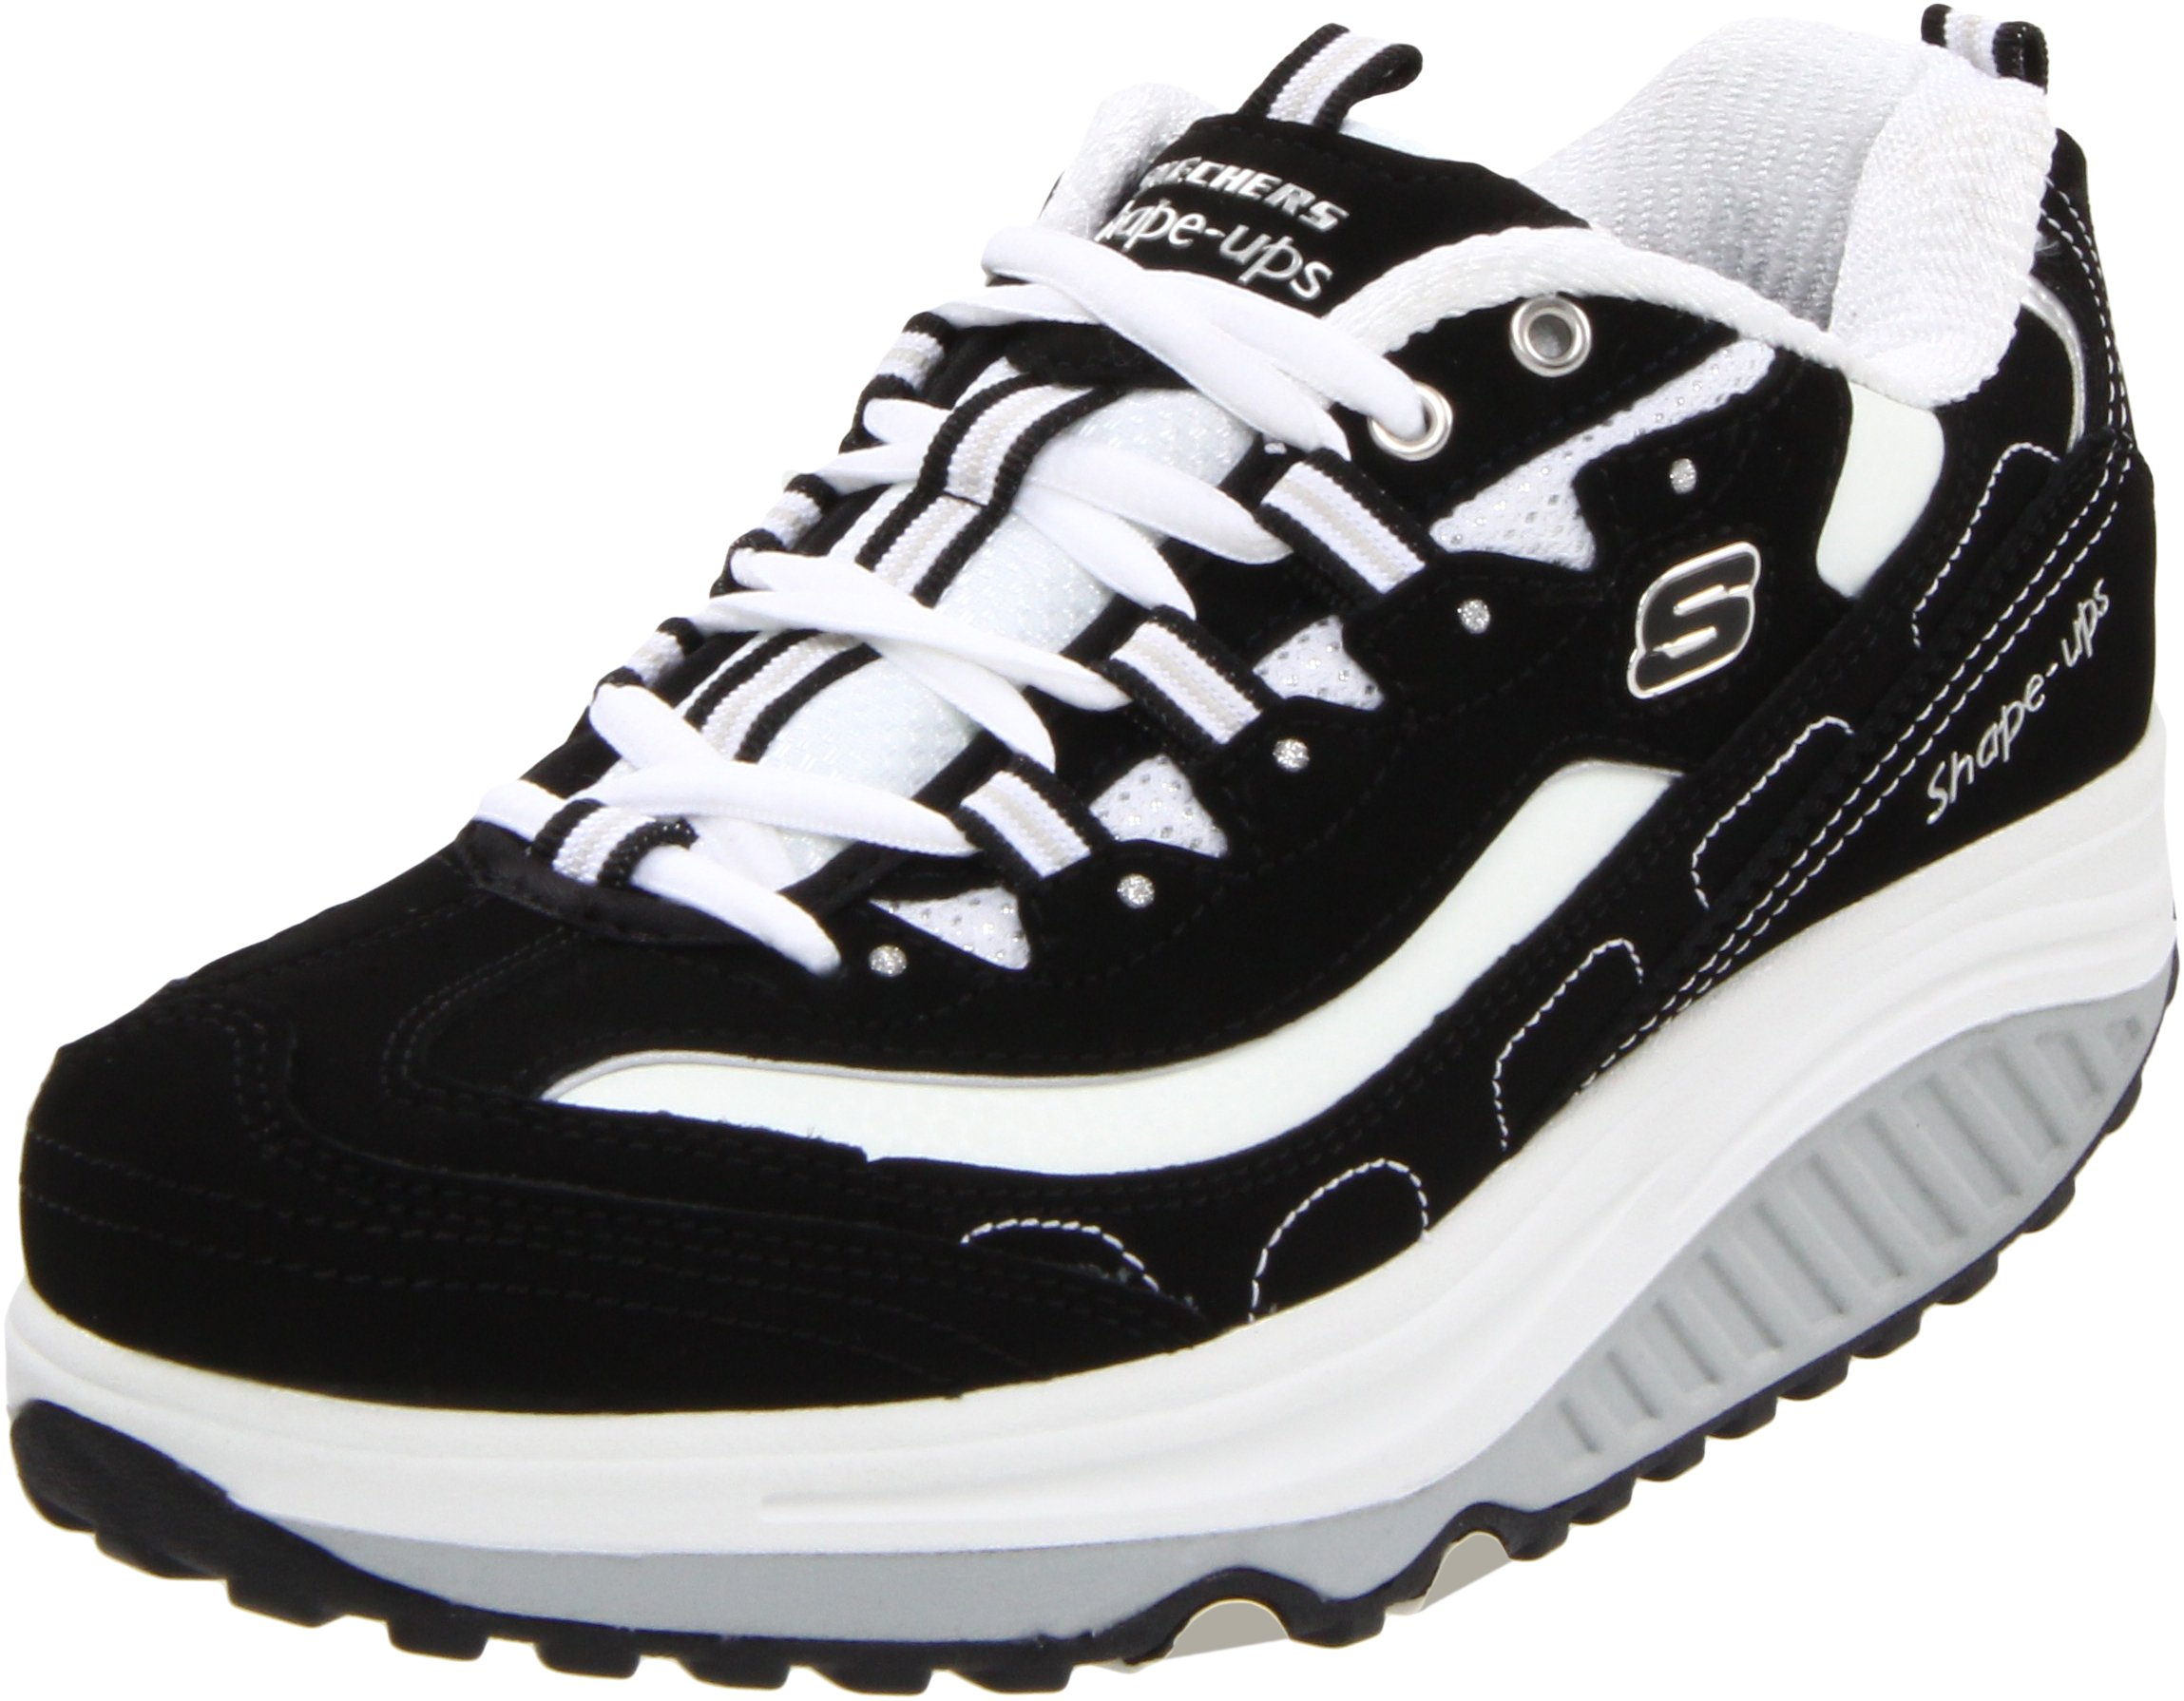 Skechers Men S Fitness Shoes